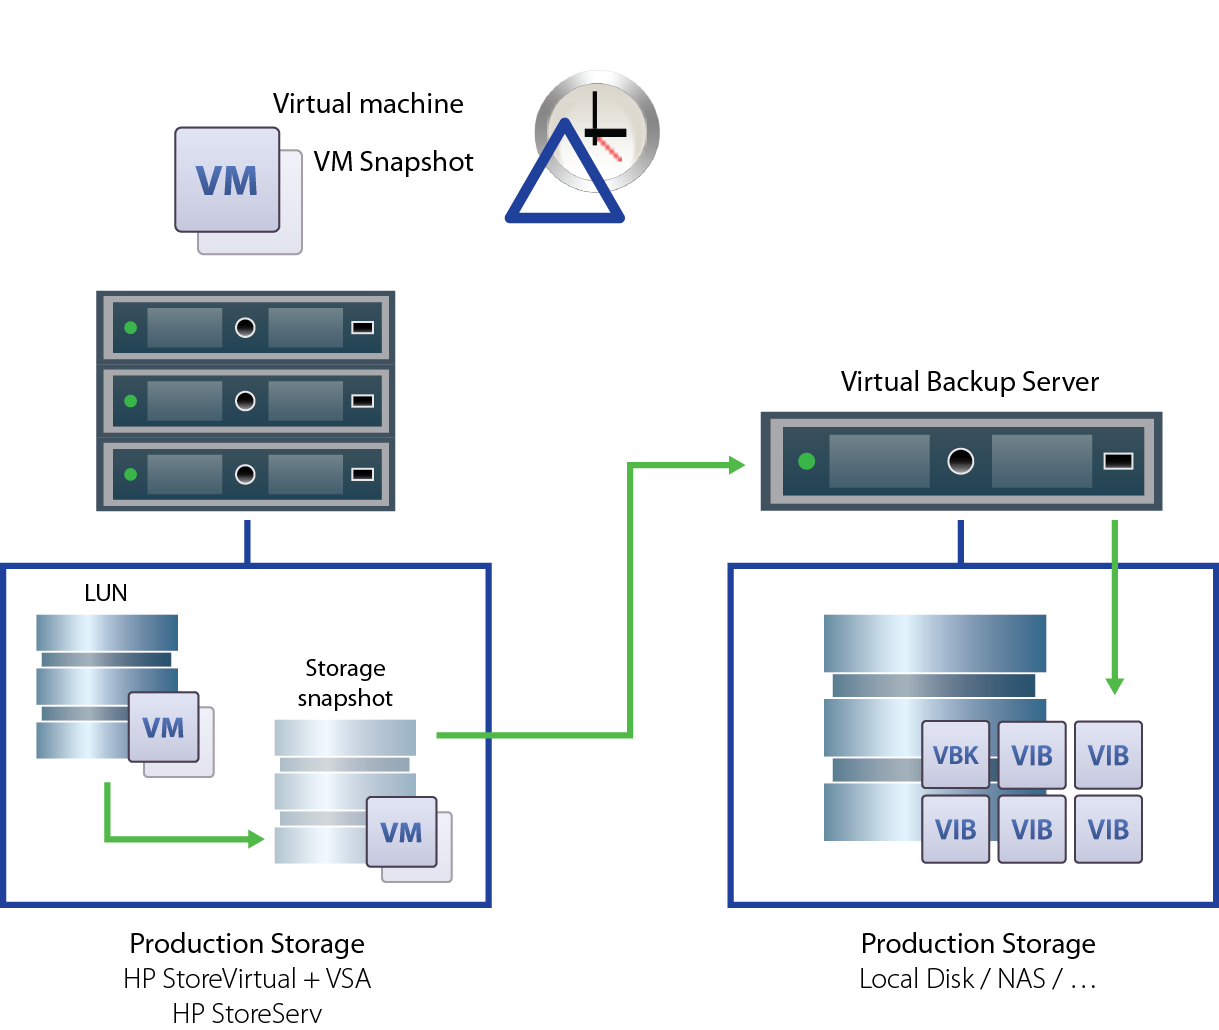 NOTE: HP 3PAR StoreServ storage systems require a Virtual Copy license to enable storage snapshot functionality.